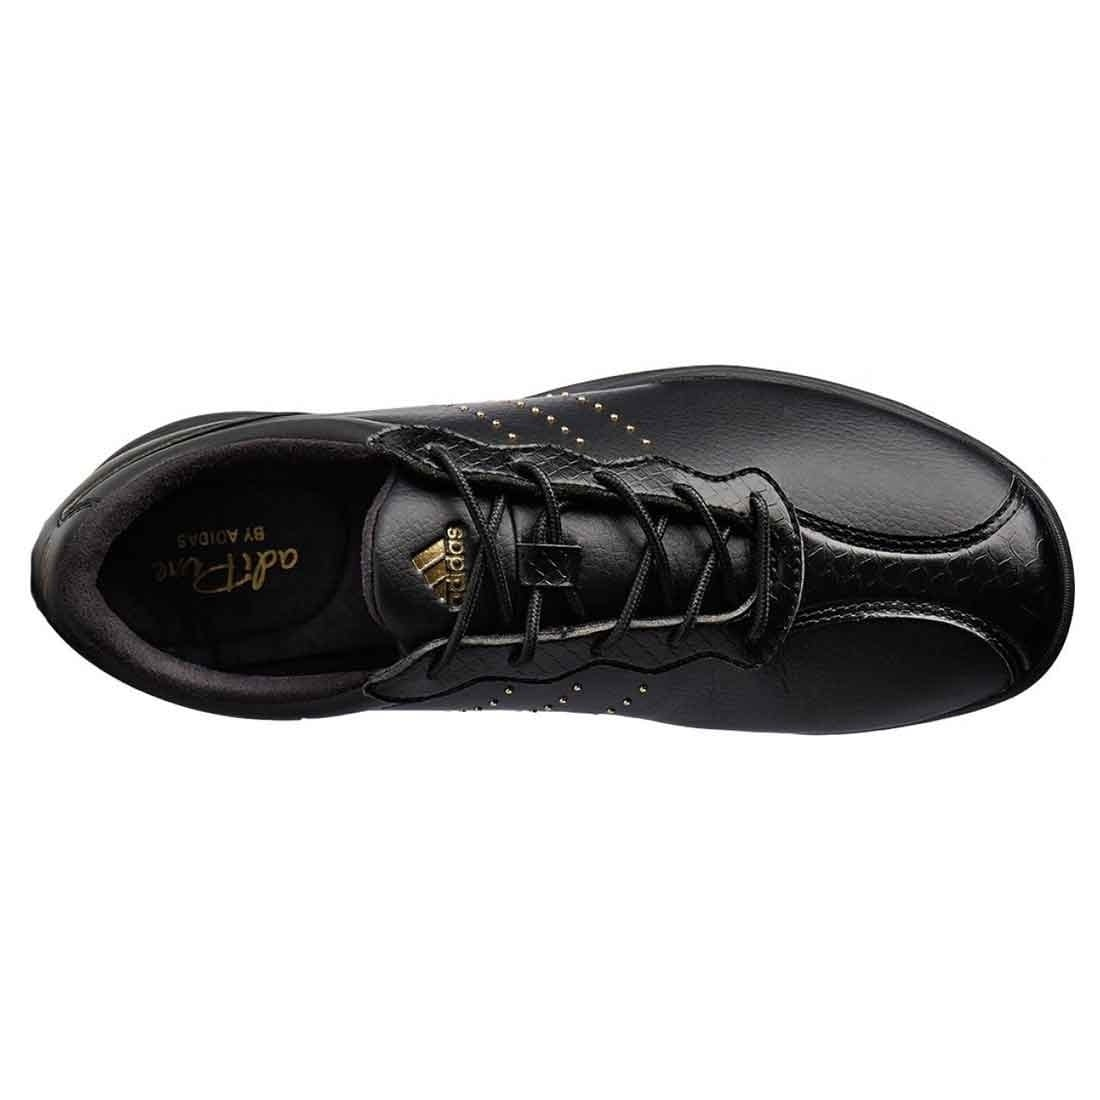 newest 651f7 a7694 Shop Adidas Womens adipure dc Low Top Lace Up Golf Shoes, Black gold, Size  5.0 - 5 - Free Shipping Today - Overstock - 22538922